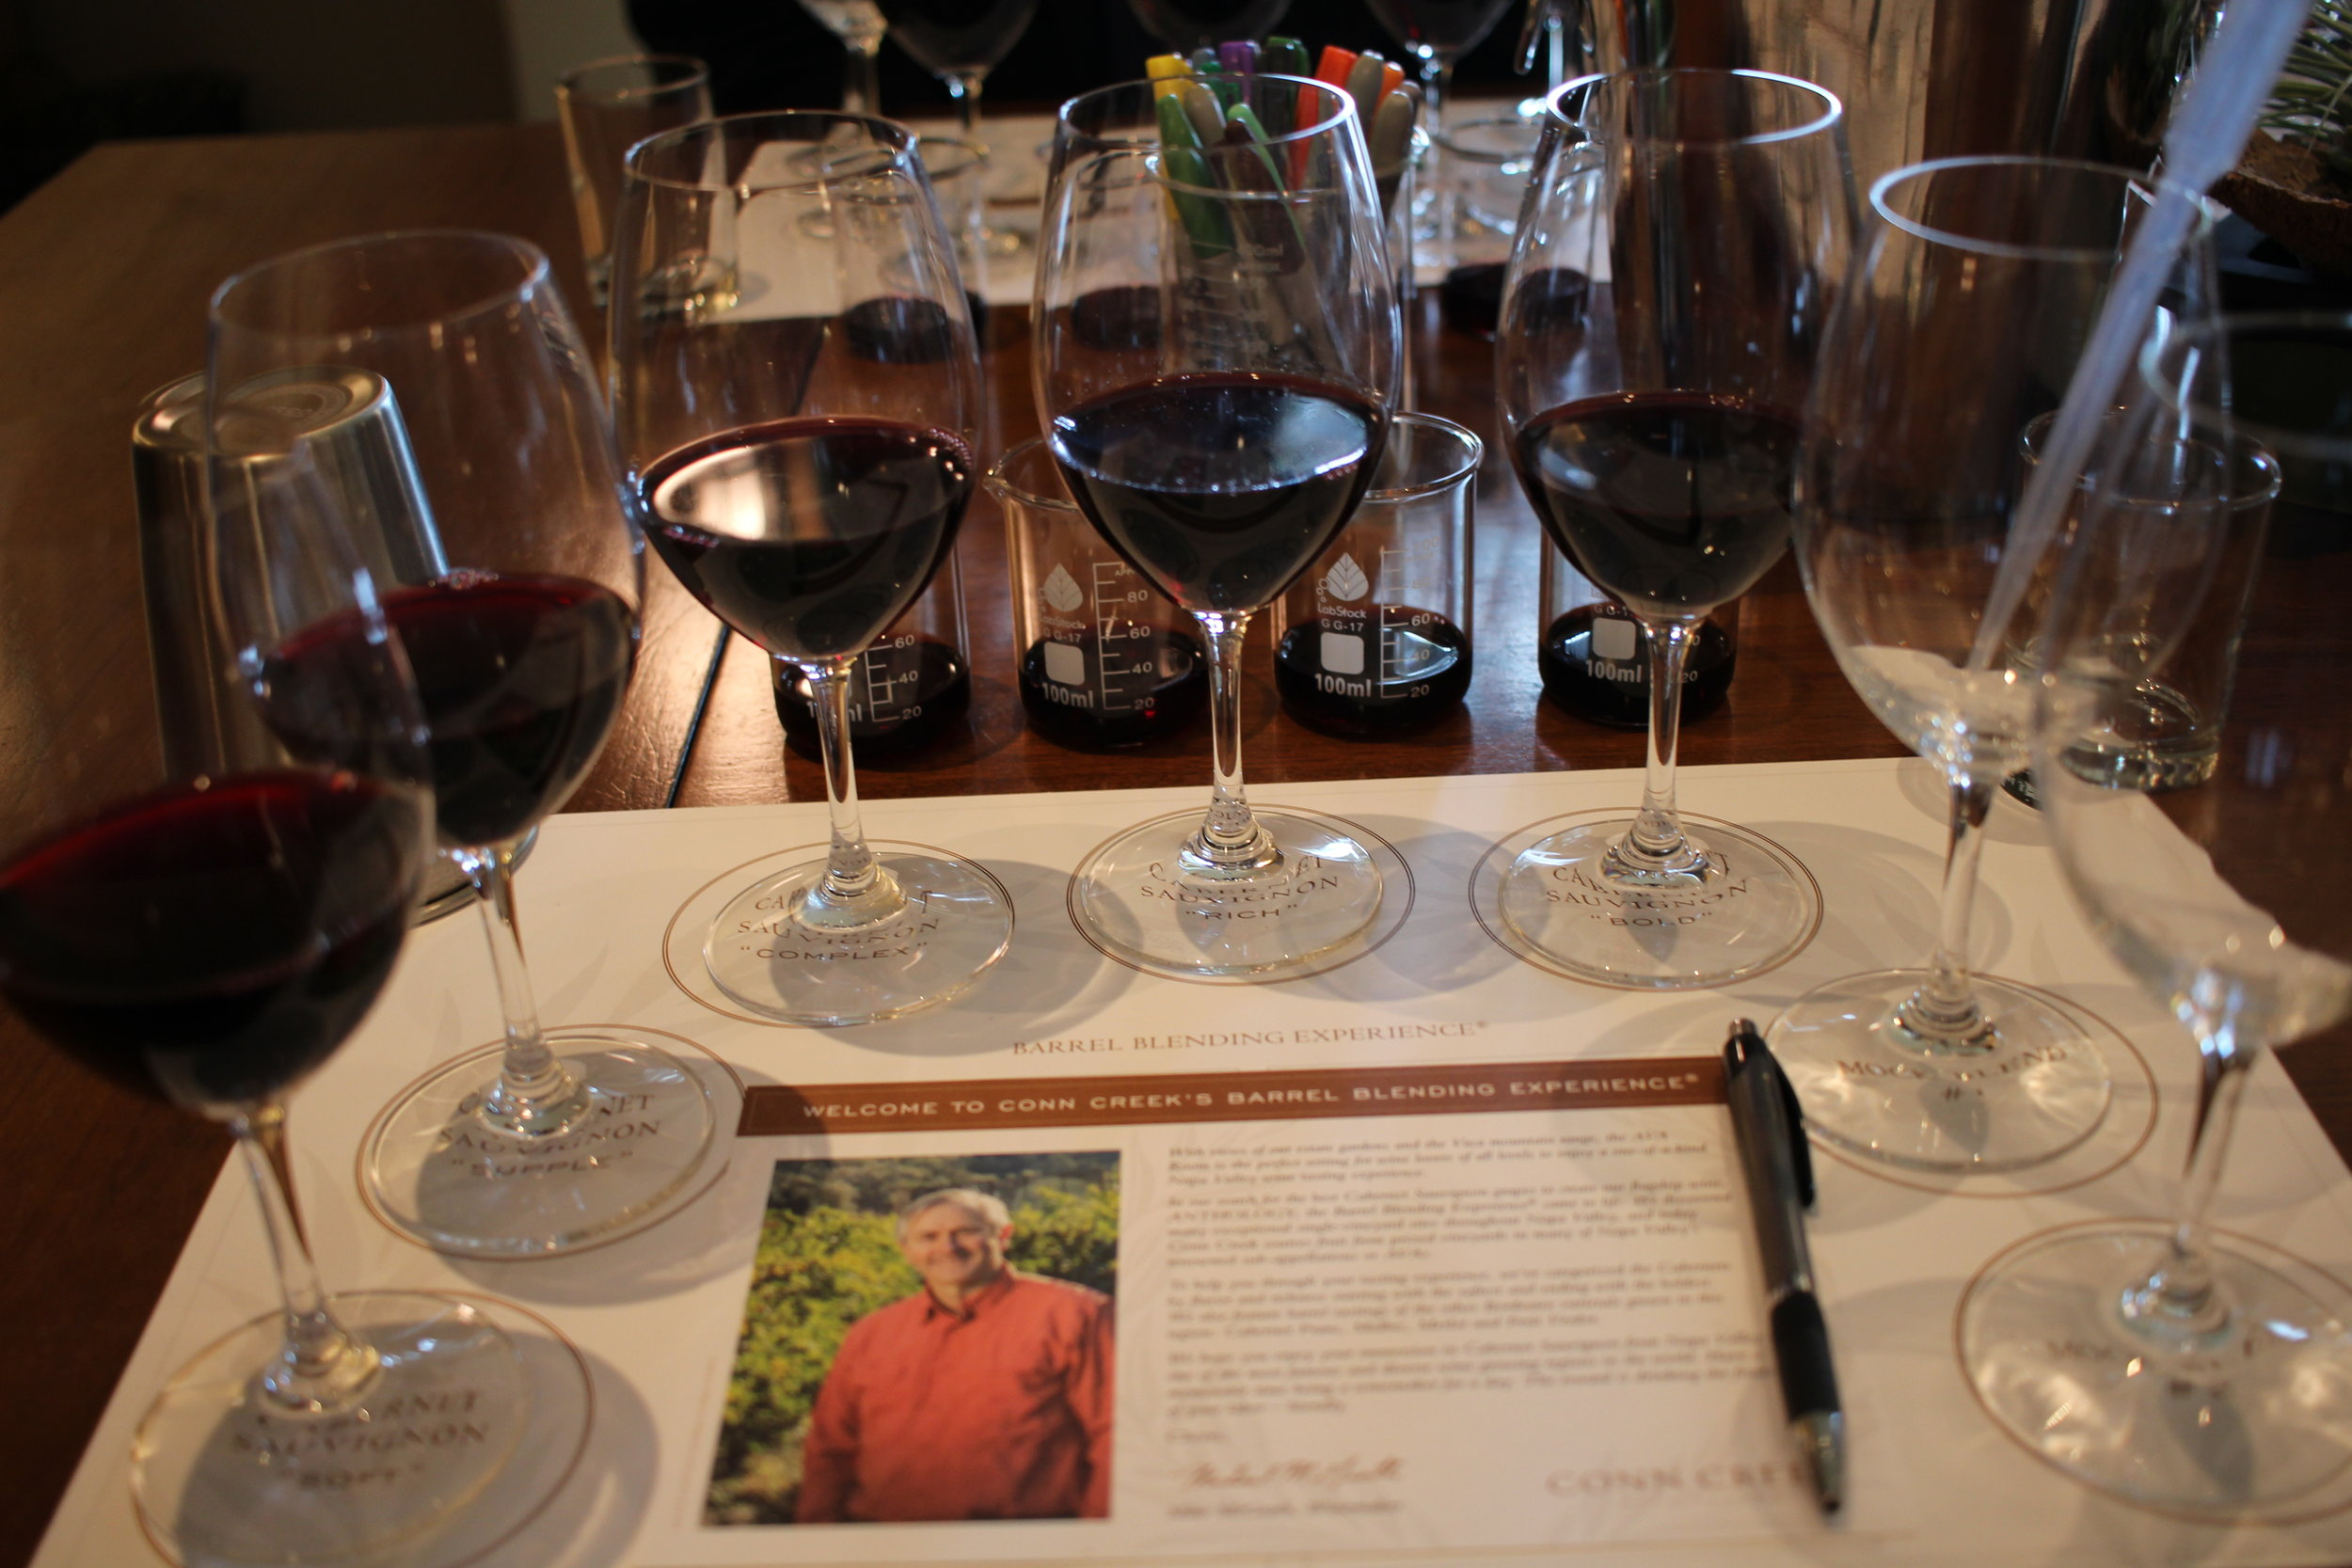 Lots of Wine at the Conn Creek Blending Experience